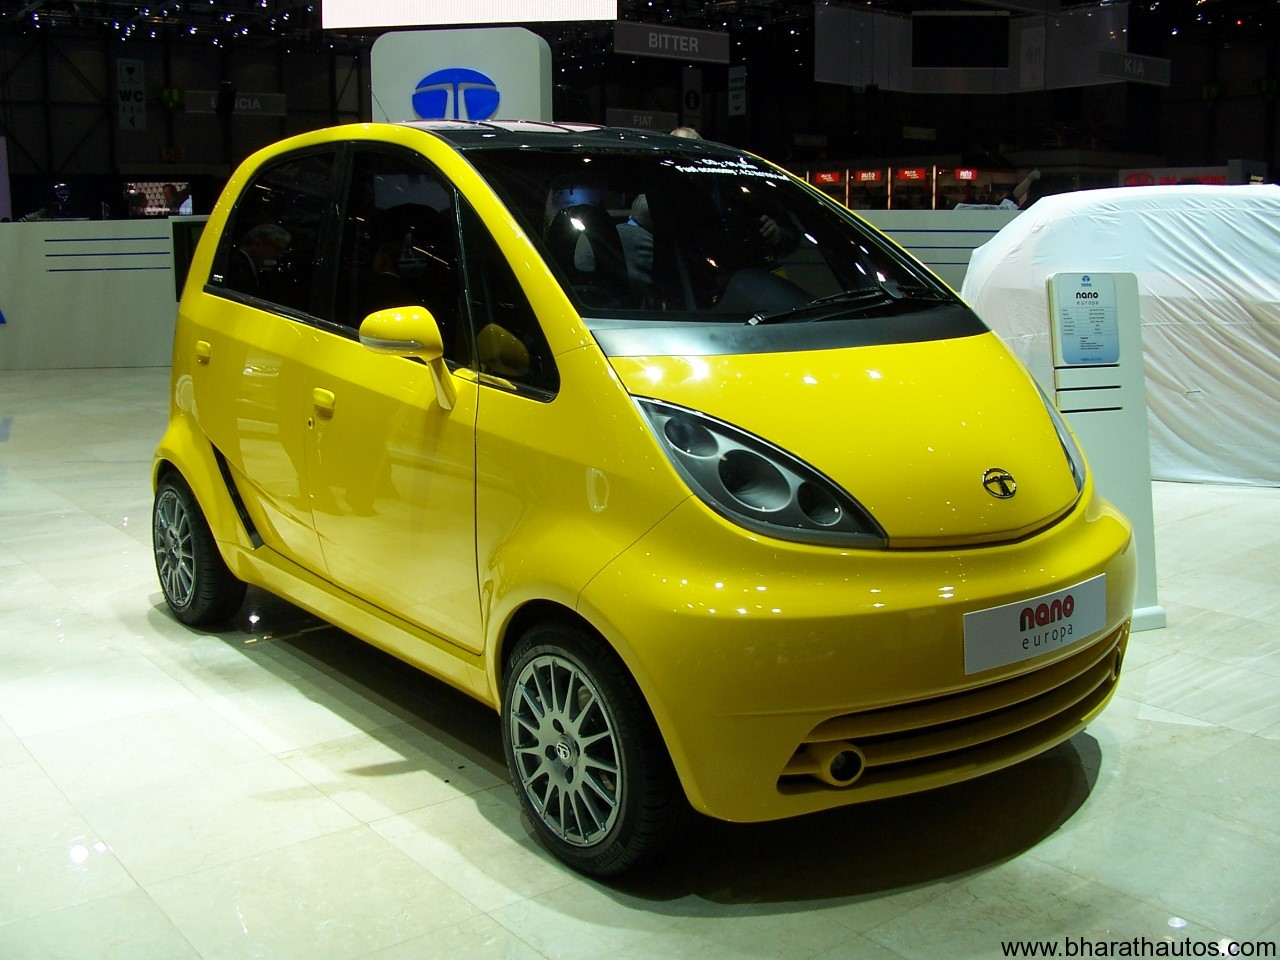 tato nano Tata nano car price in india starts at rs 247 lakh explore nano specifications, features, images, mileage & color options read nano user reviews & check on-road price.